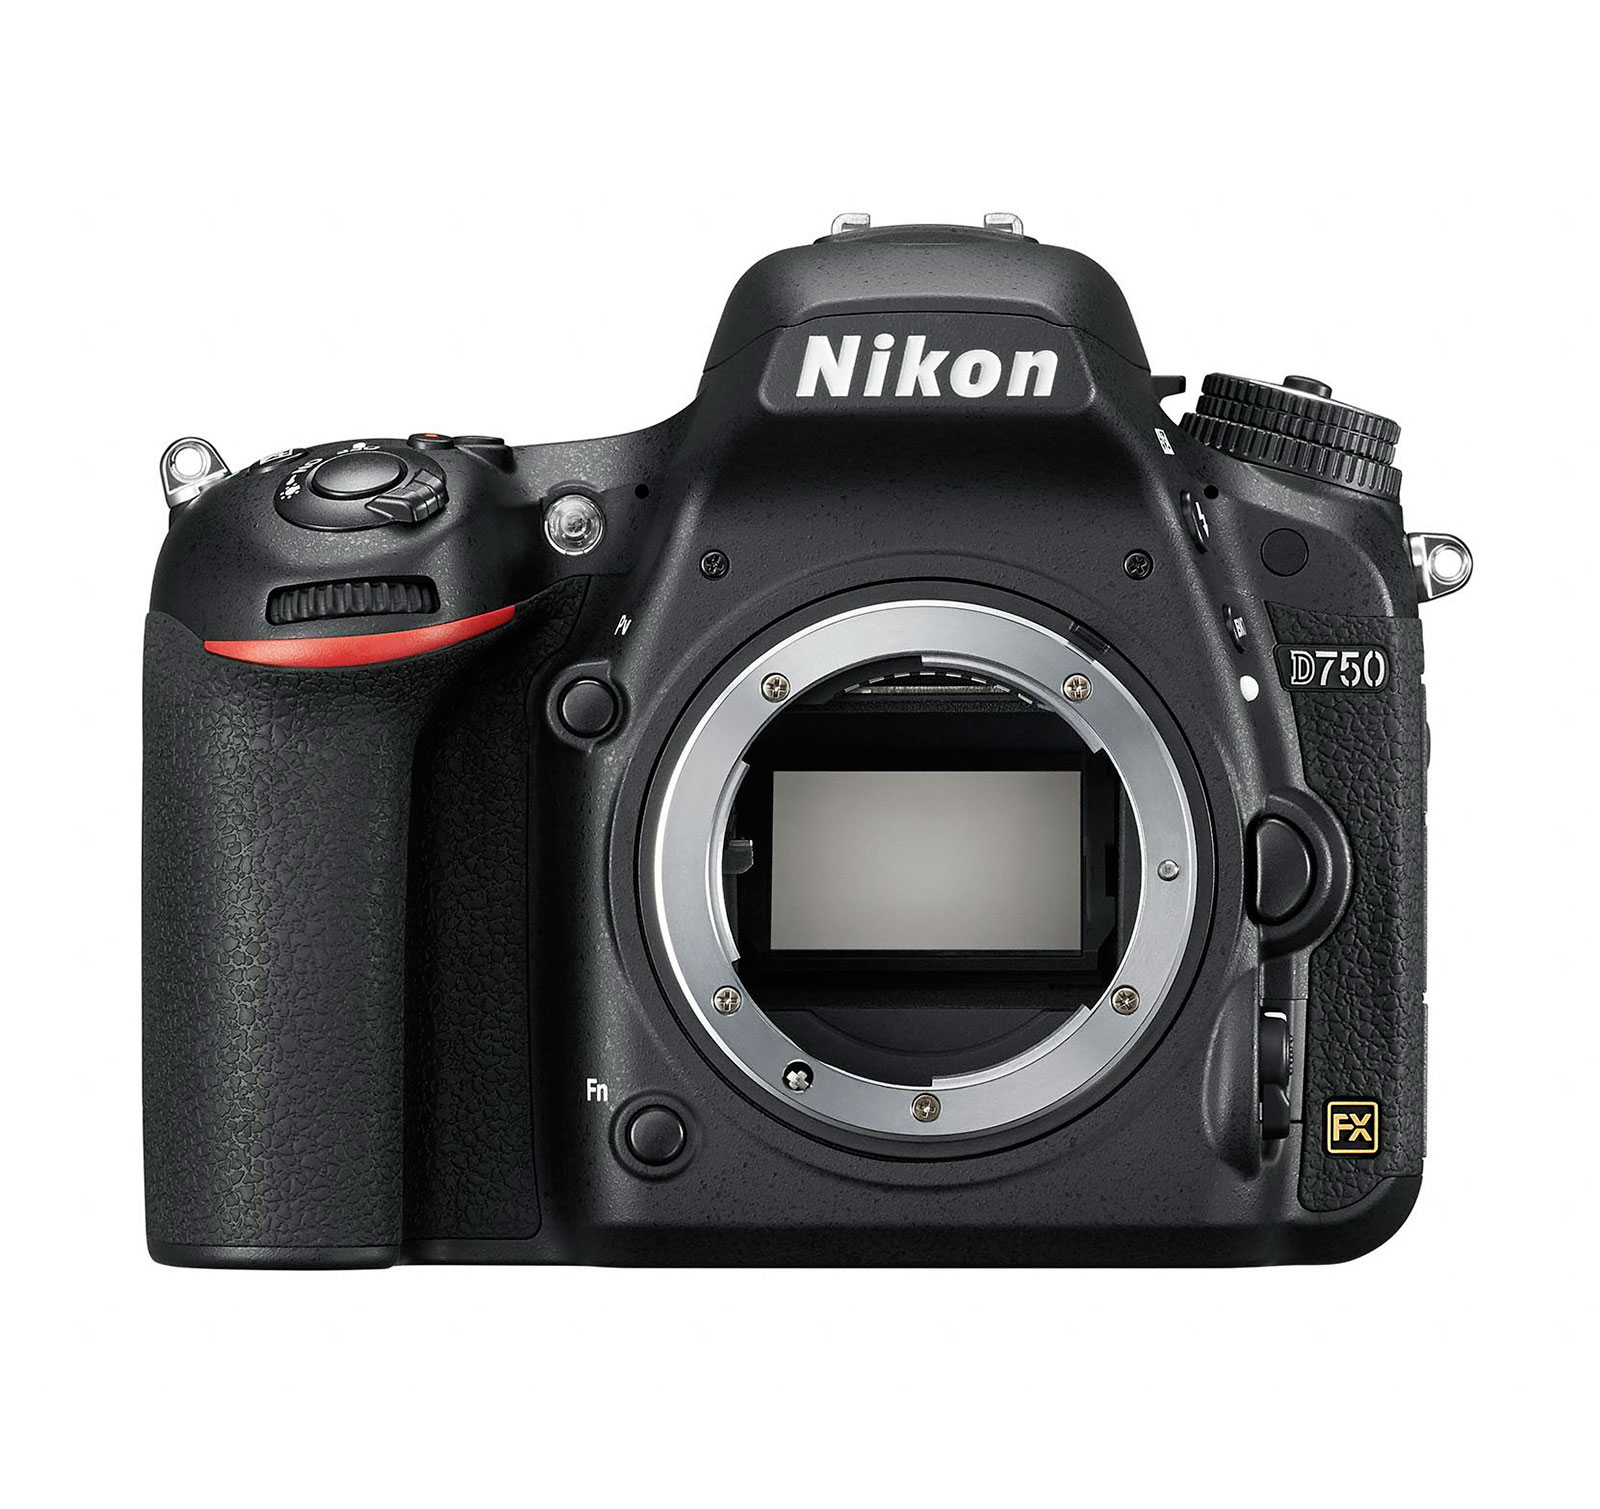 Nikon Black D750 FX-format Digital SLR Camera with 24.3 Megapixels (Body Only)